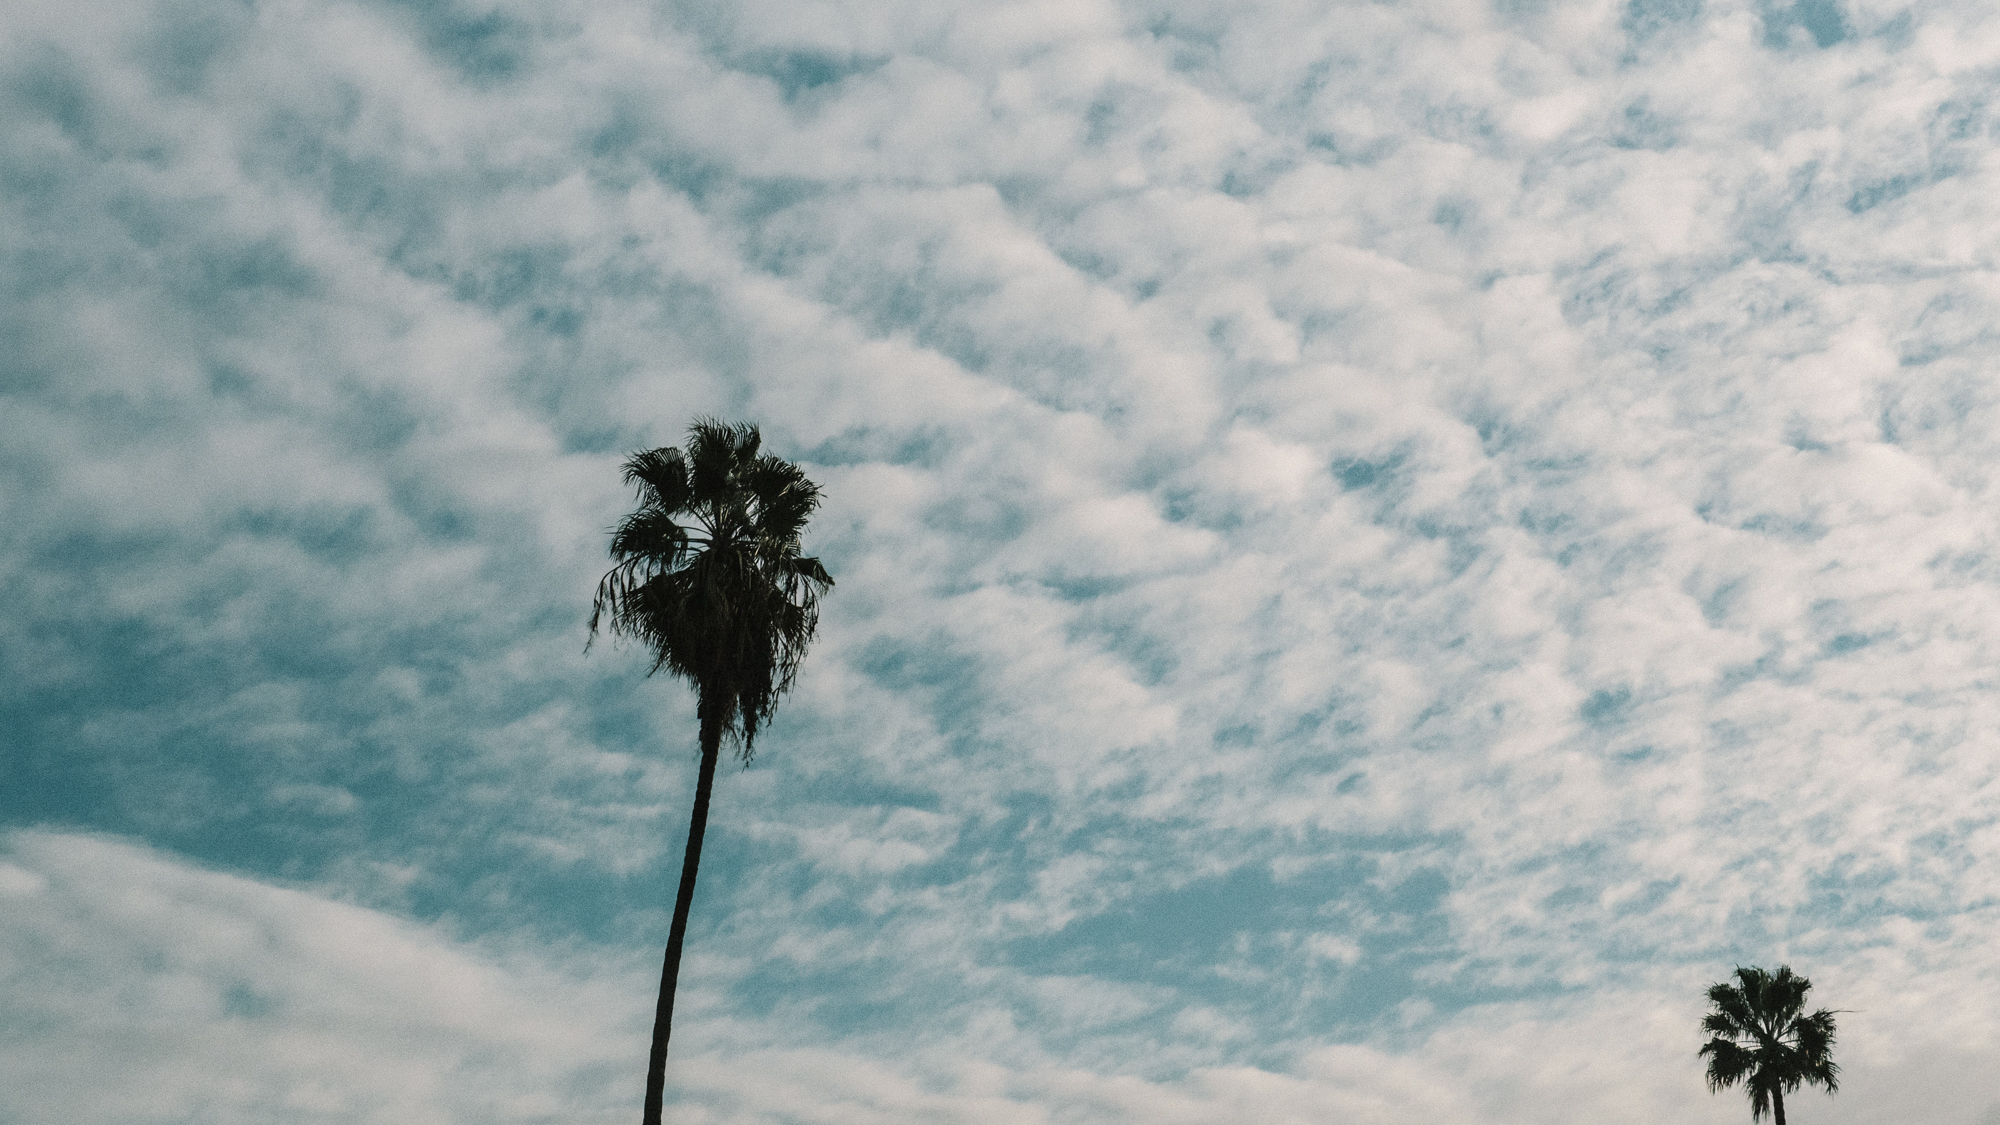 Two Palms and Clouds